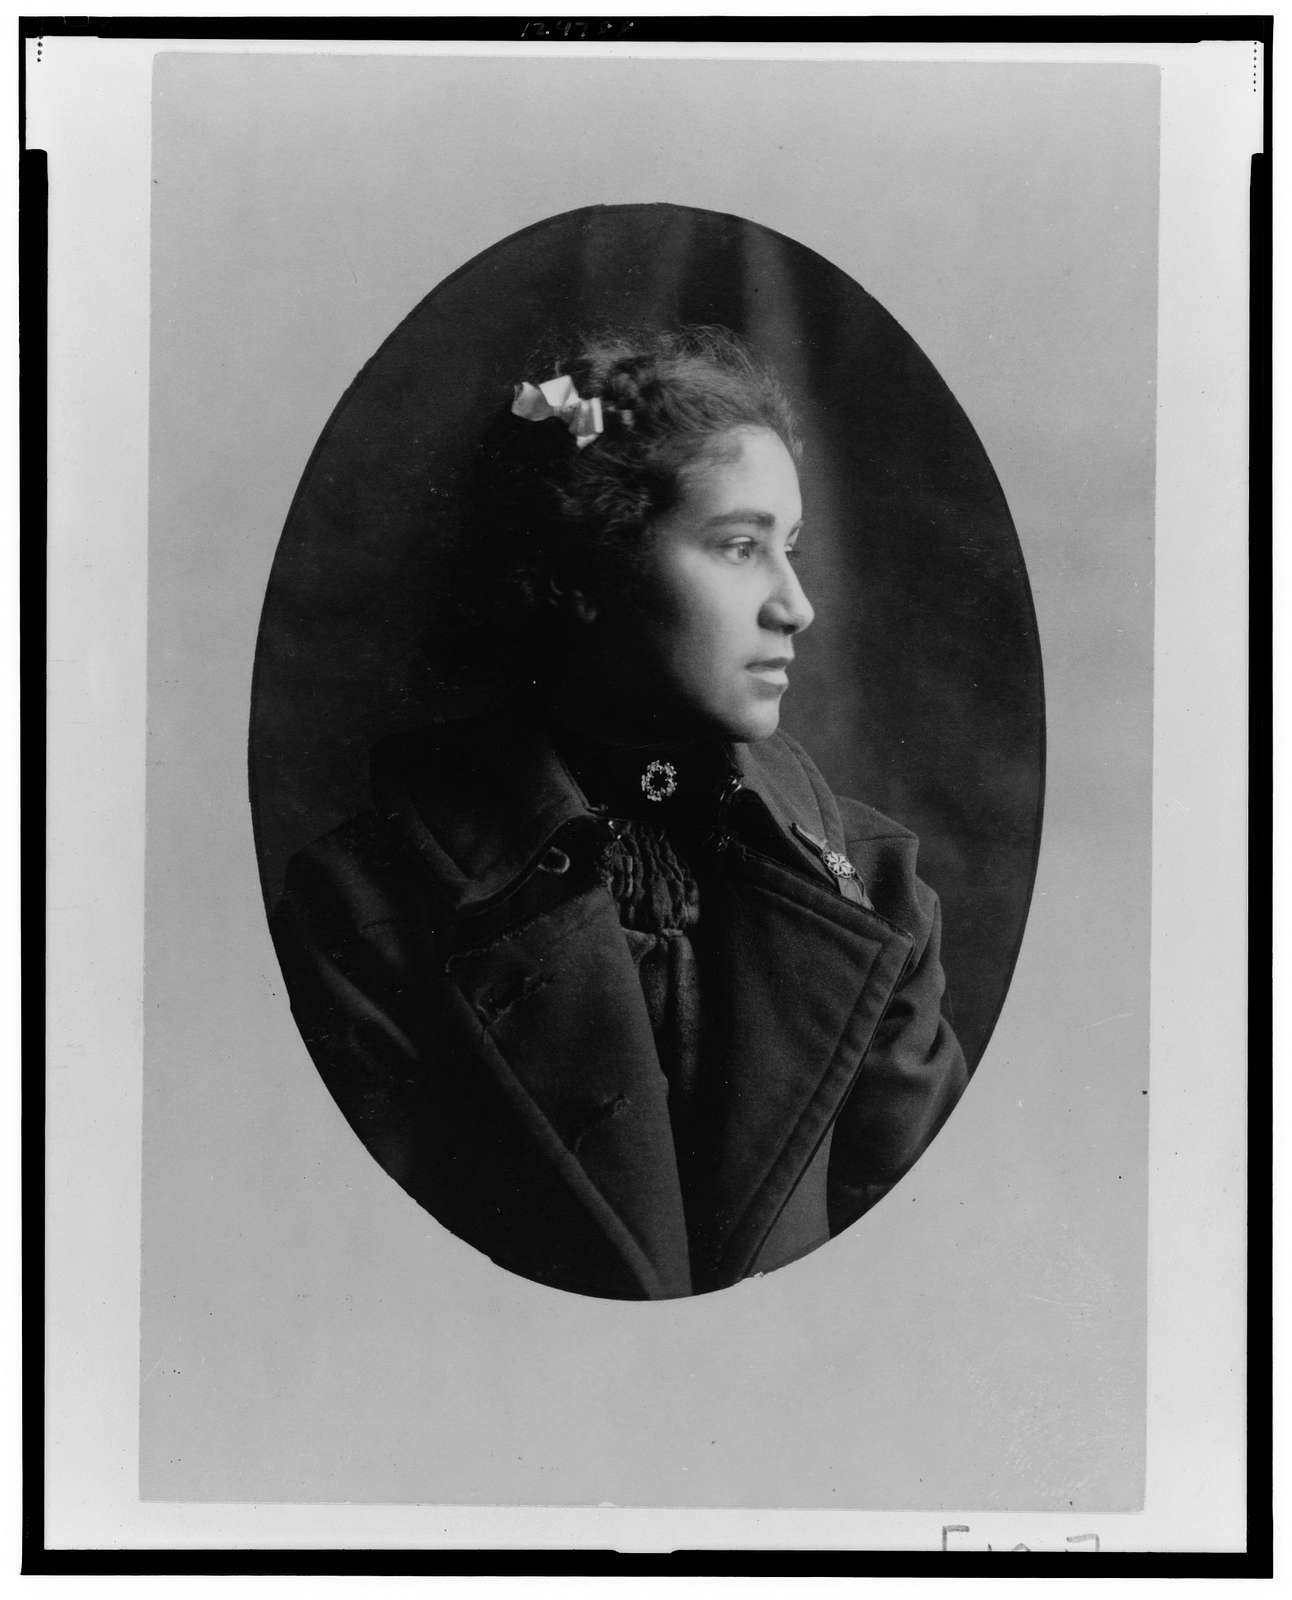 [African American woman, head-and-shoulders portrait, facing right, wearing coat]